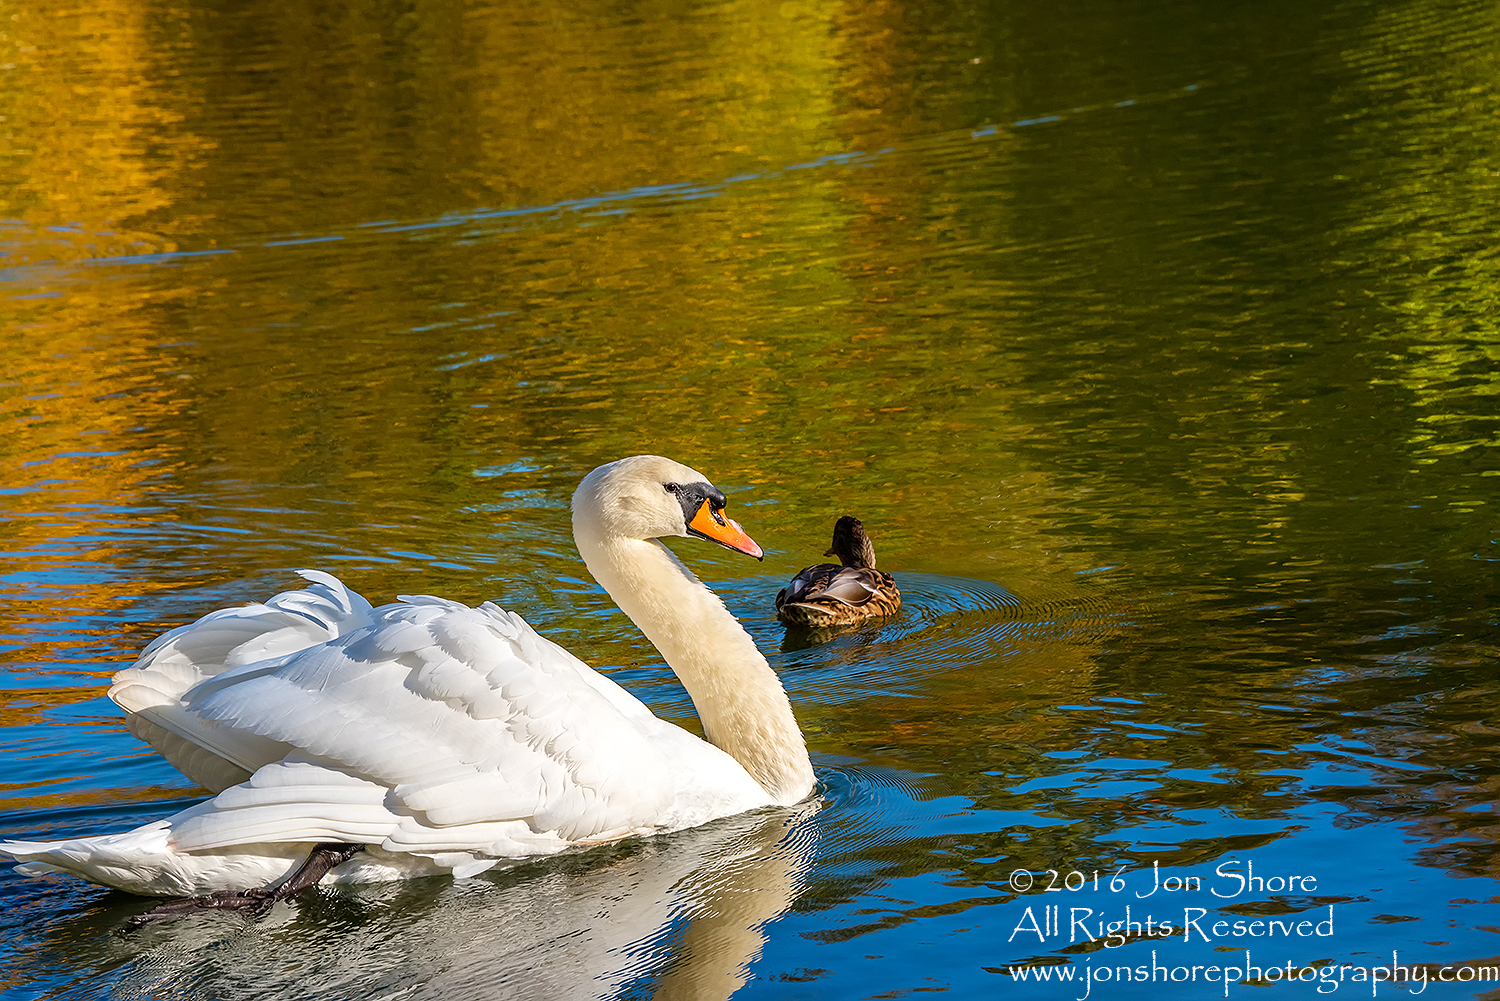 Swan and Duck in Autumn Reflection. Cesis, Latvia, Nikkor 300mm